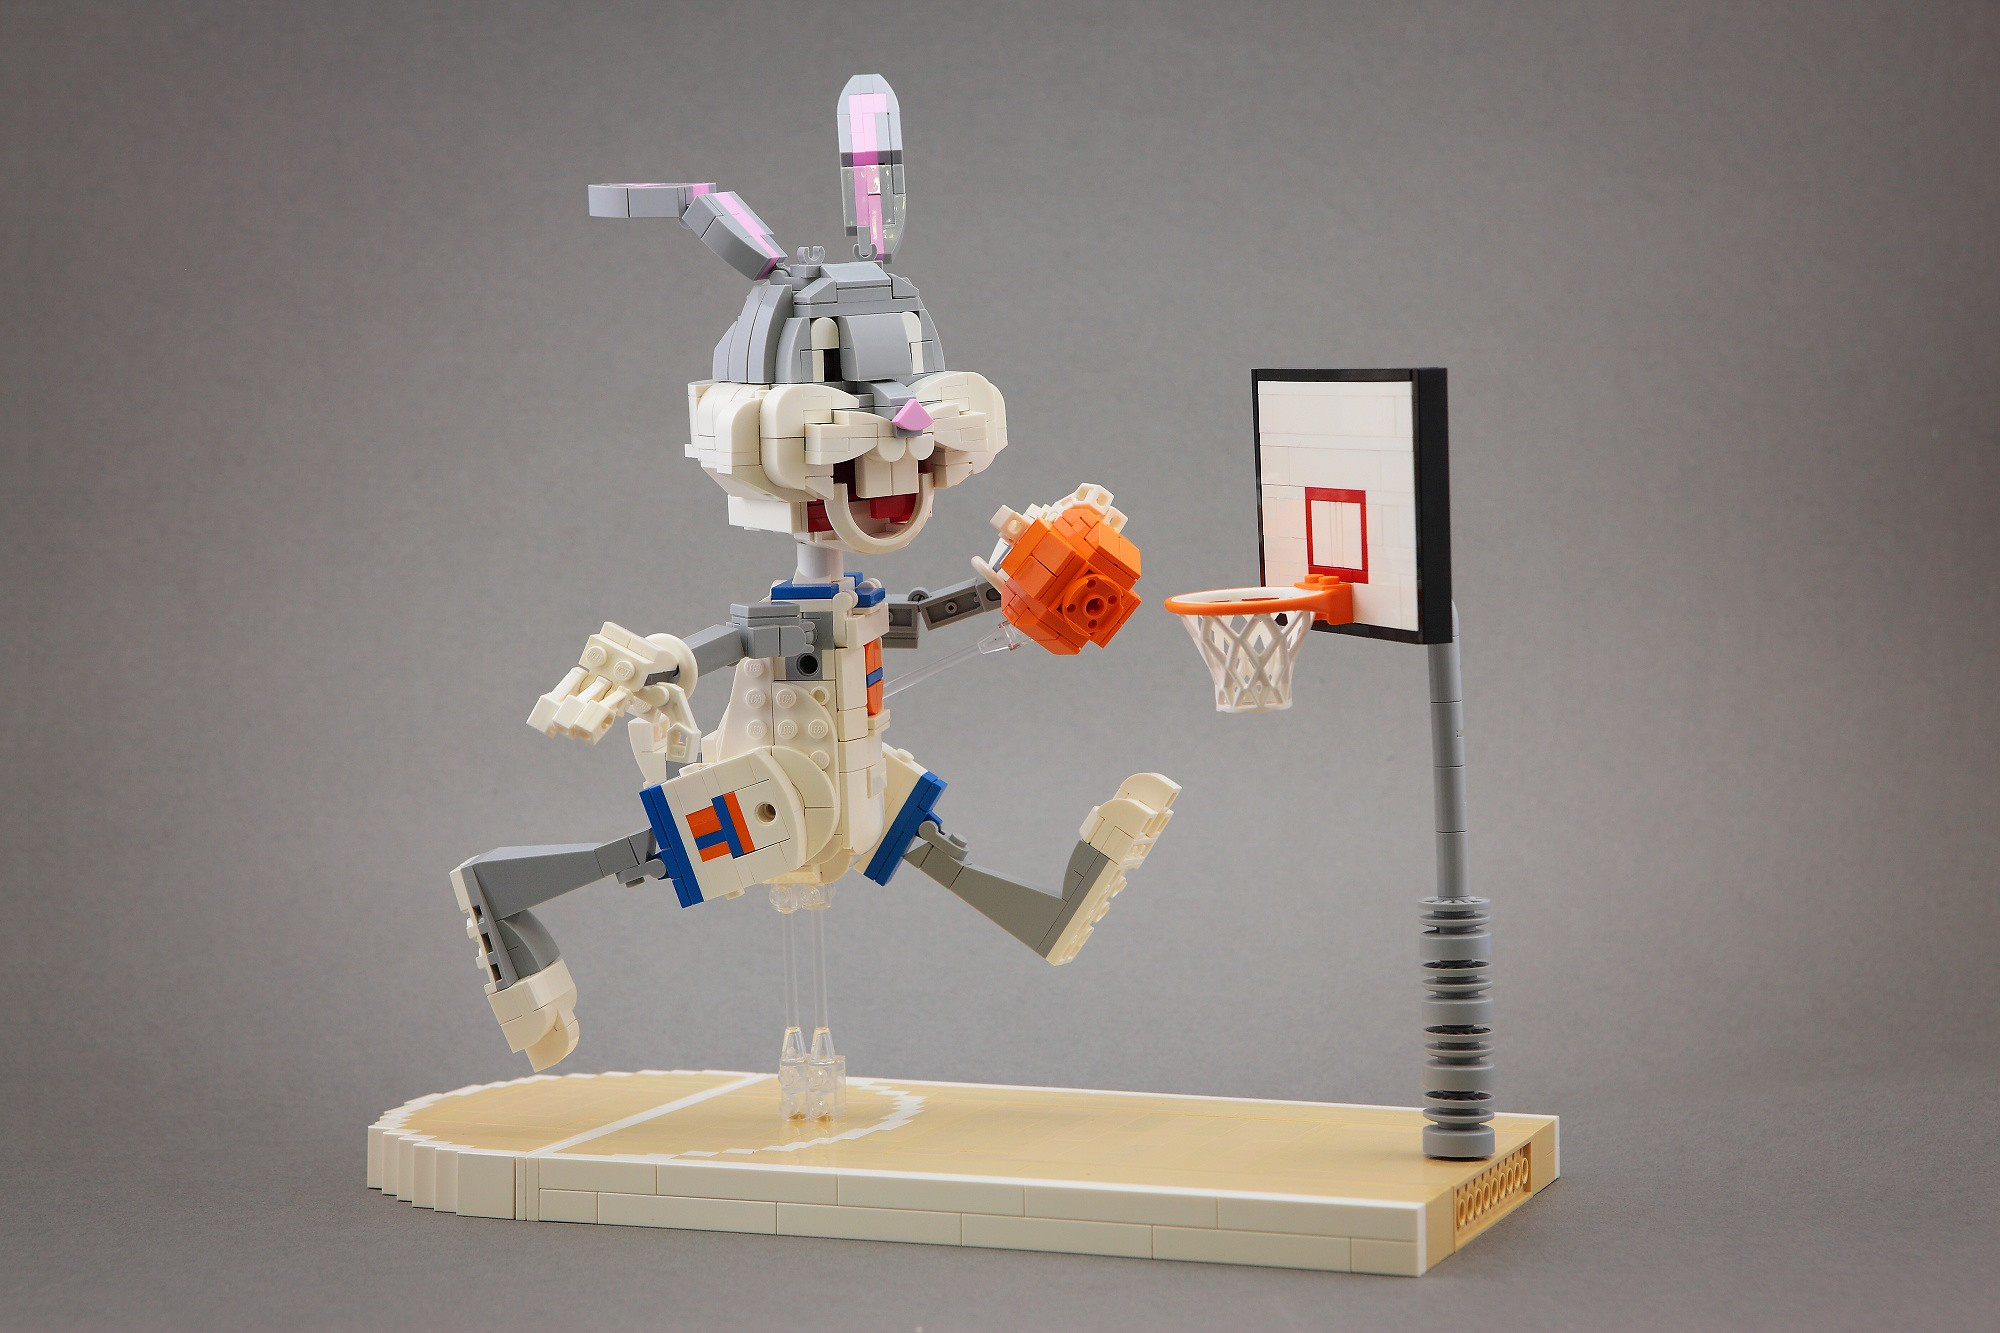 nEO_IMG_DOGOD_Space Dunk_01